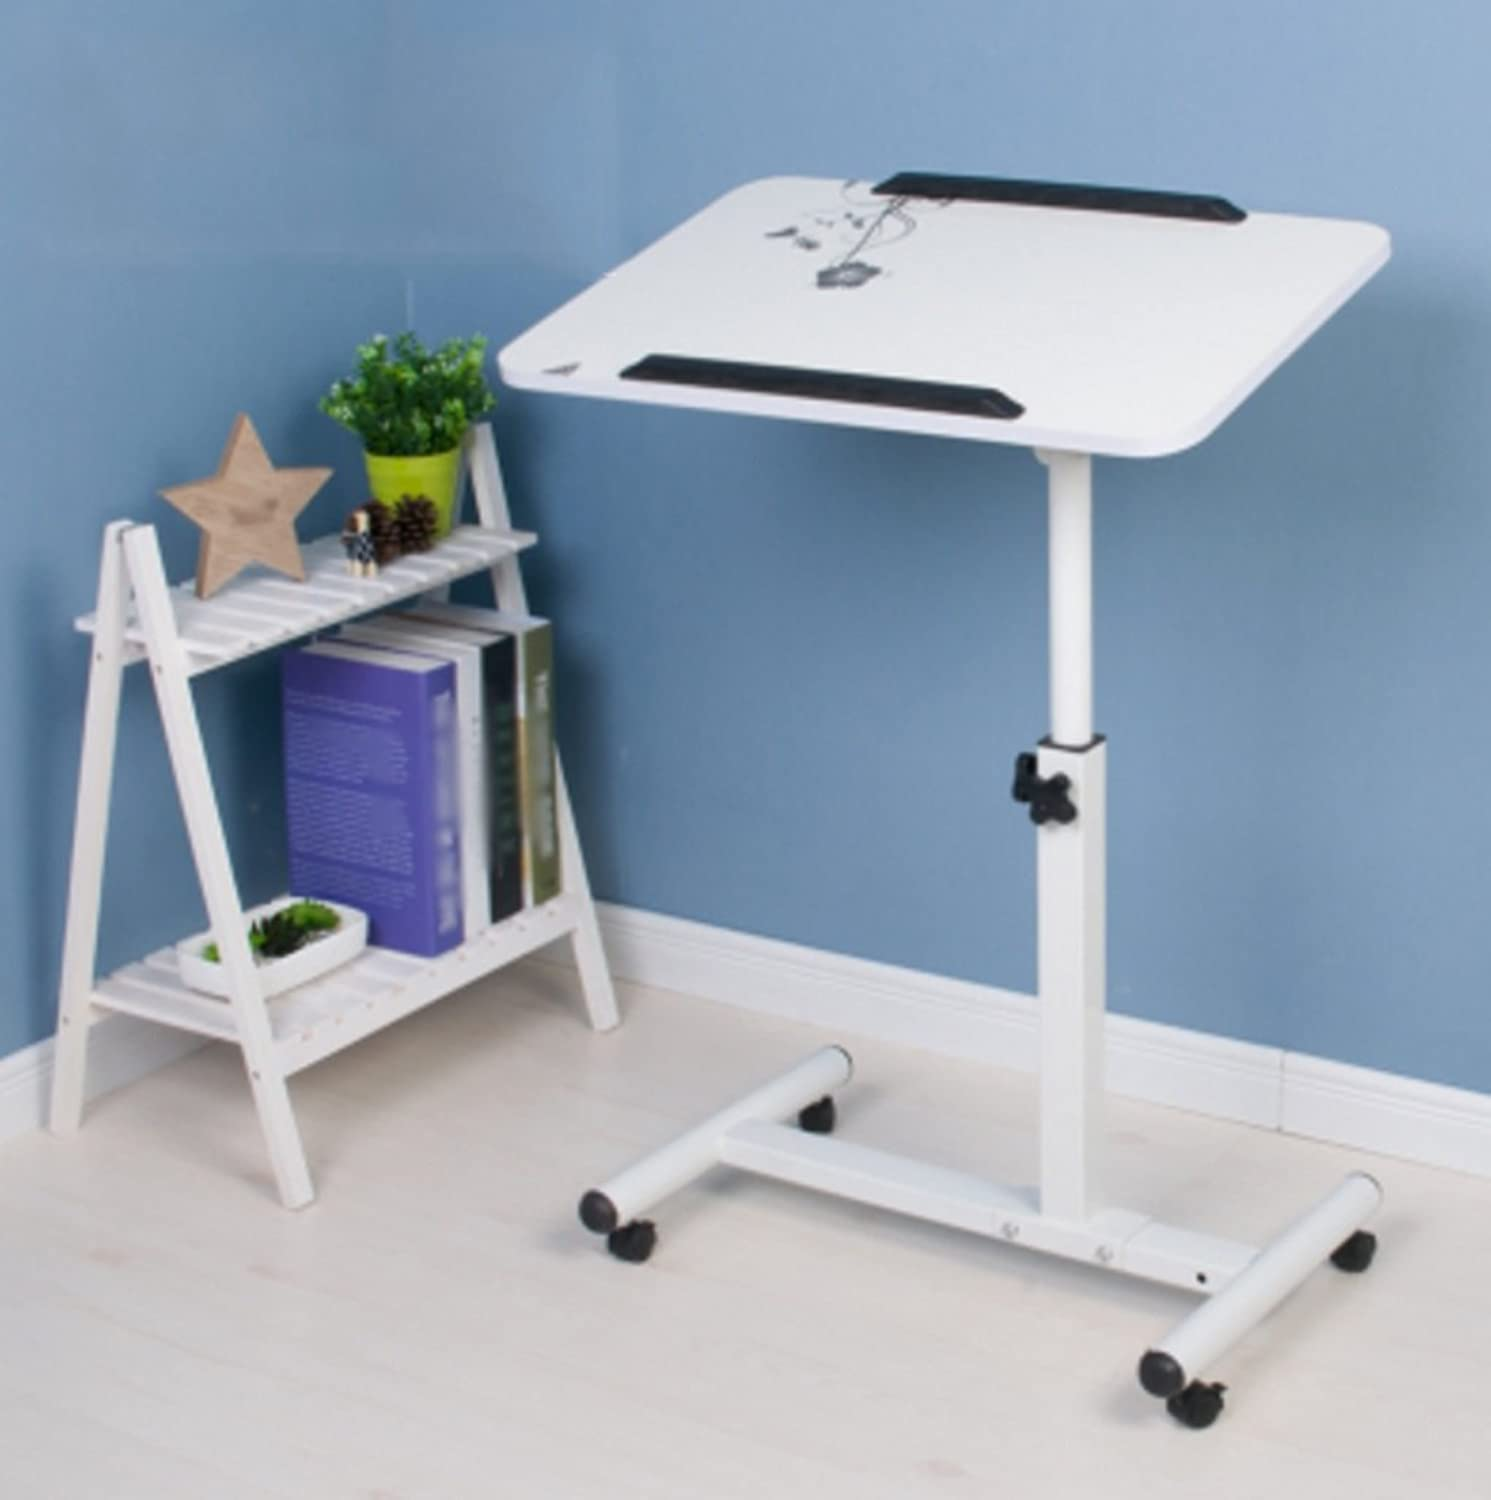 HBJP Assembly Lazy redate Laptop Table Bed Collapsible Simple and Modern Folding Table (color    3)